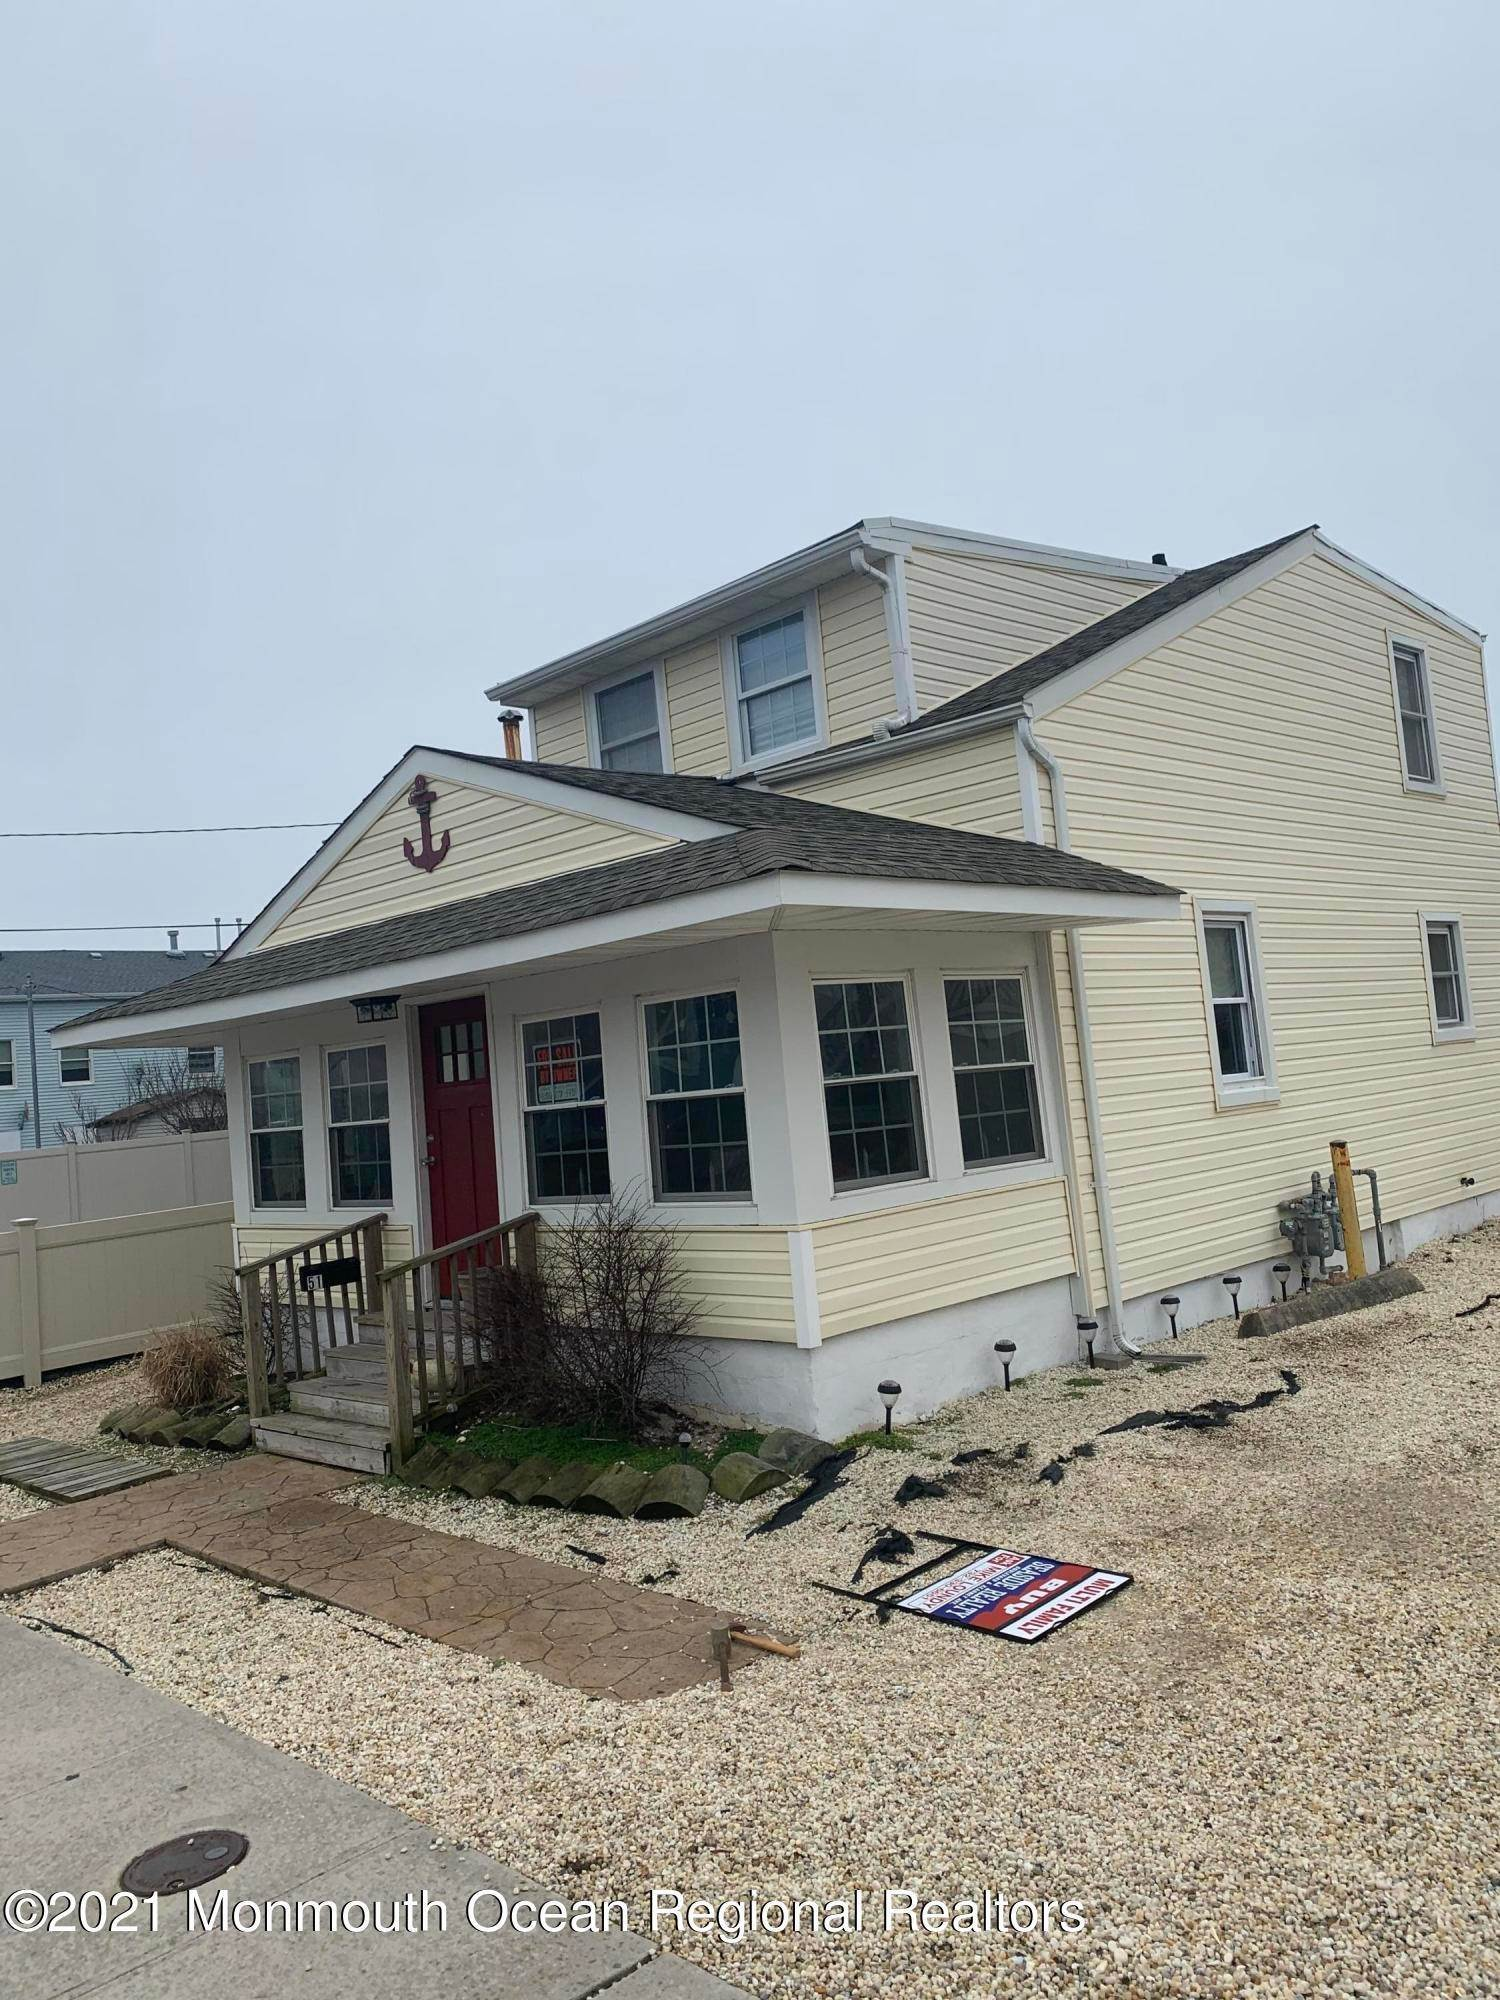 Multi-Family Homes for Sale at 51-55 Sampson Avenue Seaside Heights, New Jersey 08751 United States